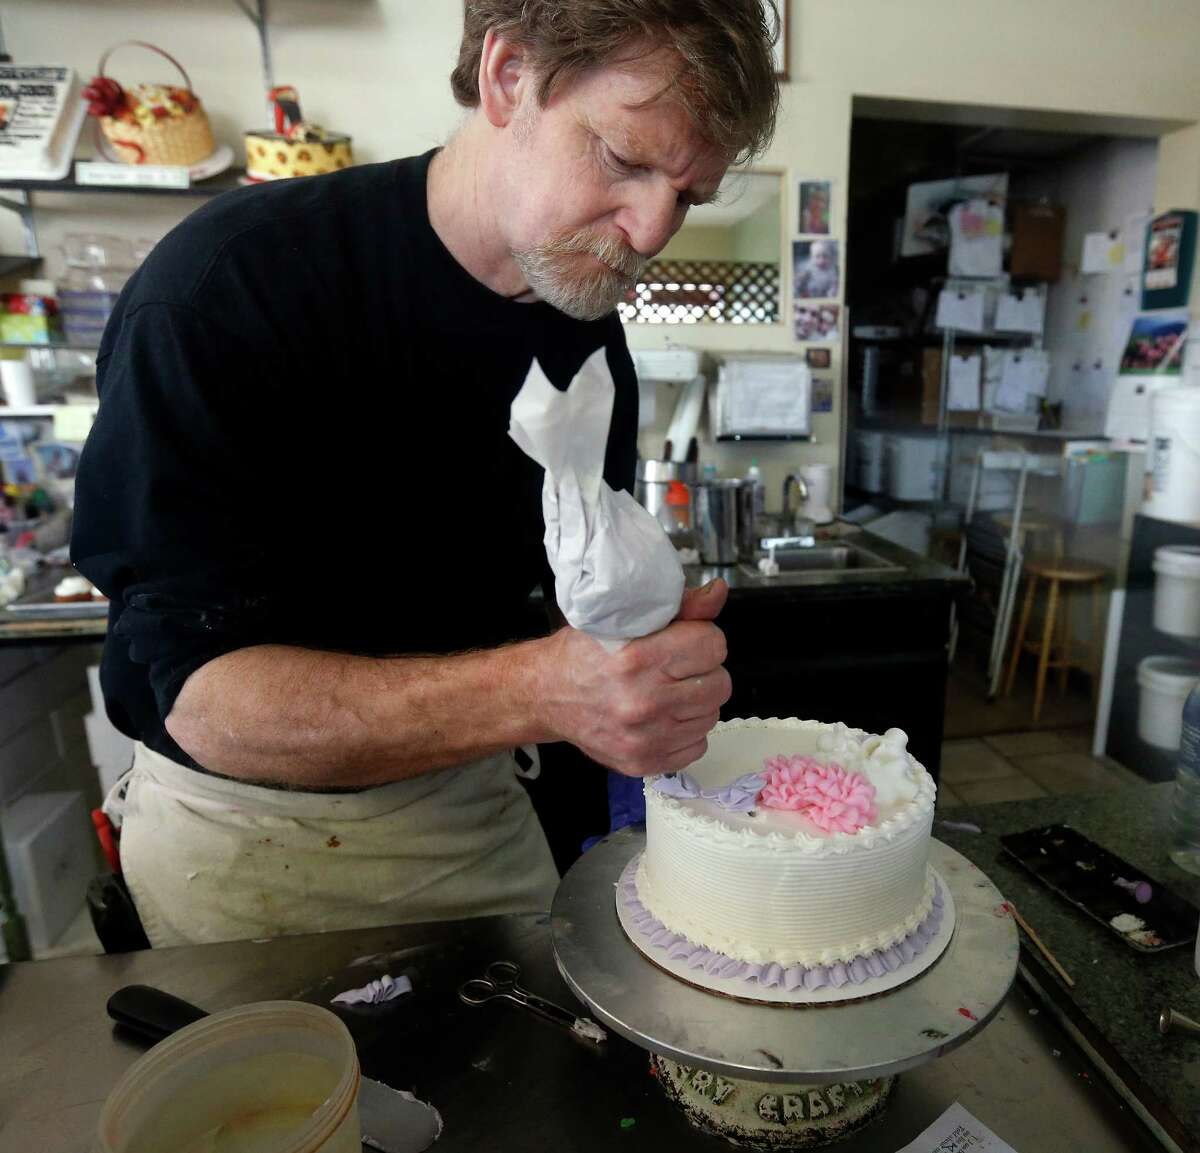 FILE - In this March 10, 2014 file photo, Masterpiece Cakeshop owner Jack Phillips decorates a cake inside his store, in Lakewood, Colo. Phillips a suburban Denver baker who wouldn't make a wedding cake for a same-sex couple cannot cite his religious beliefs in refusing them service because it would lead to discrimination, the Colorado Court of Appeals ruled Thursday, Aug. 13, 2015. (AP Photo/Brennan Linsley, File)